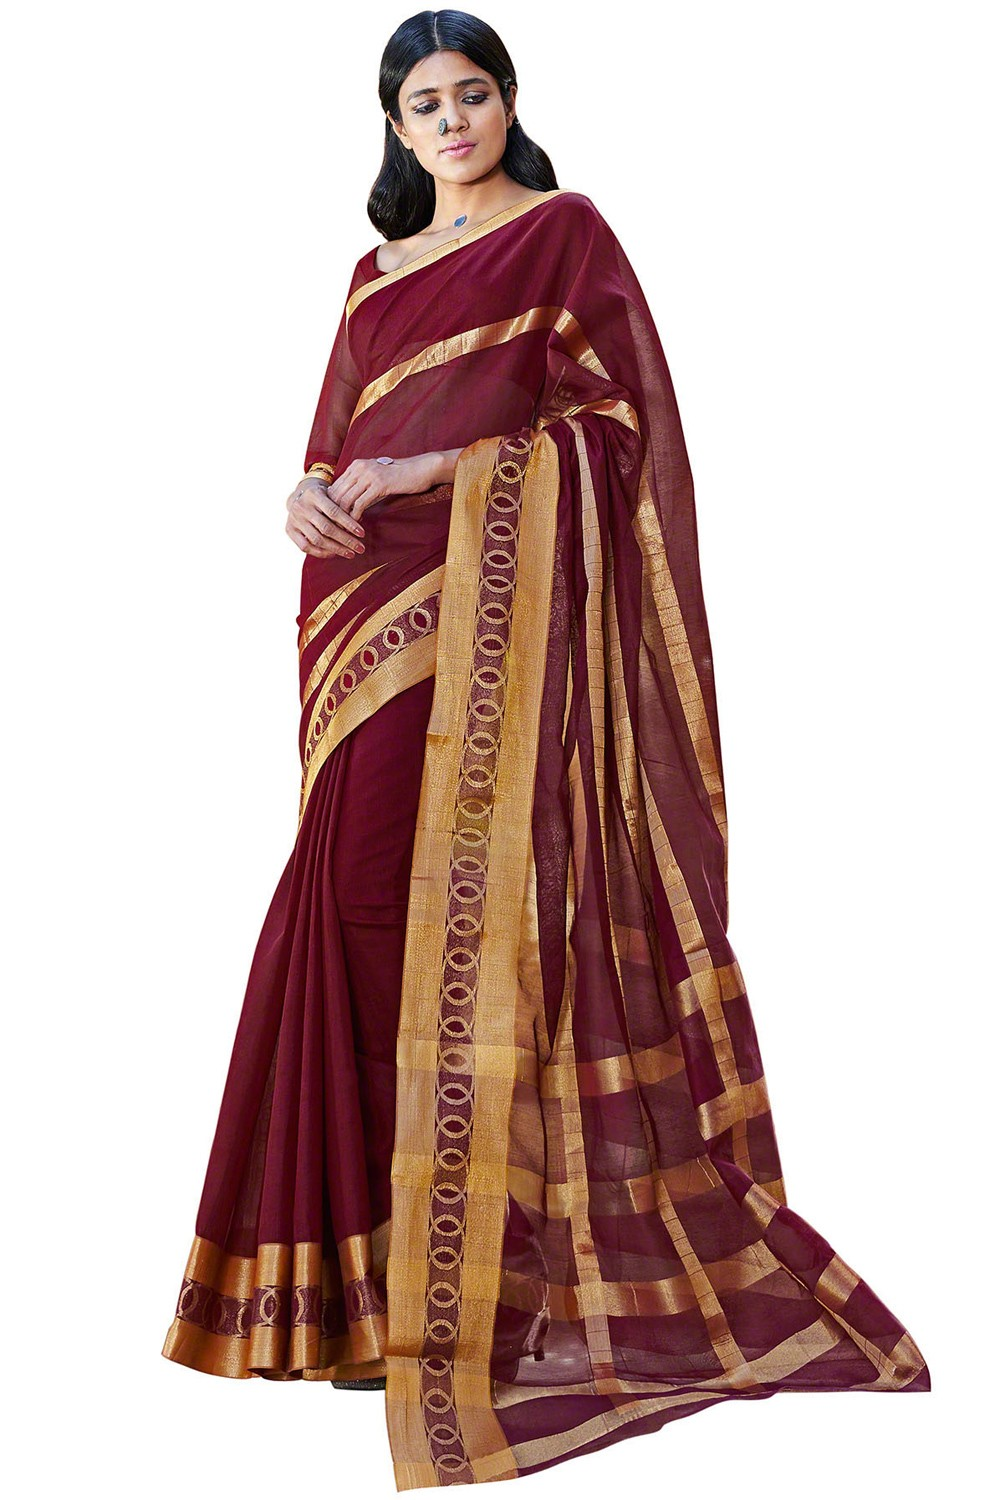 Paaneri Maroon Color Cotton Printed Saree With Stripe Pallu-Product Code-16110024508